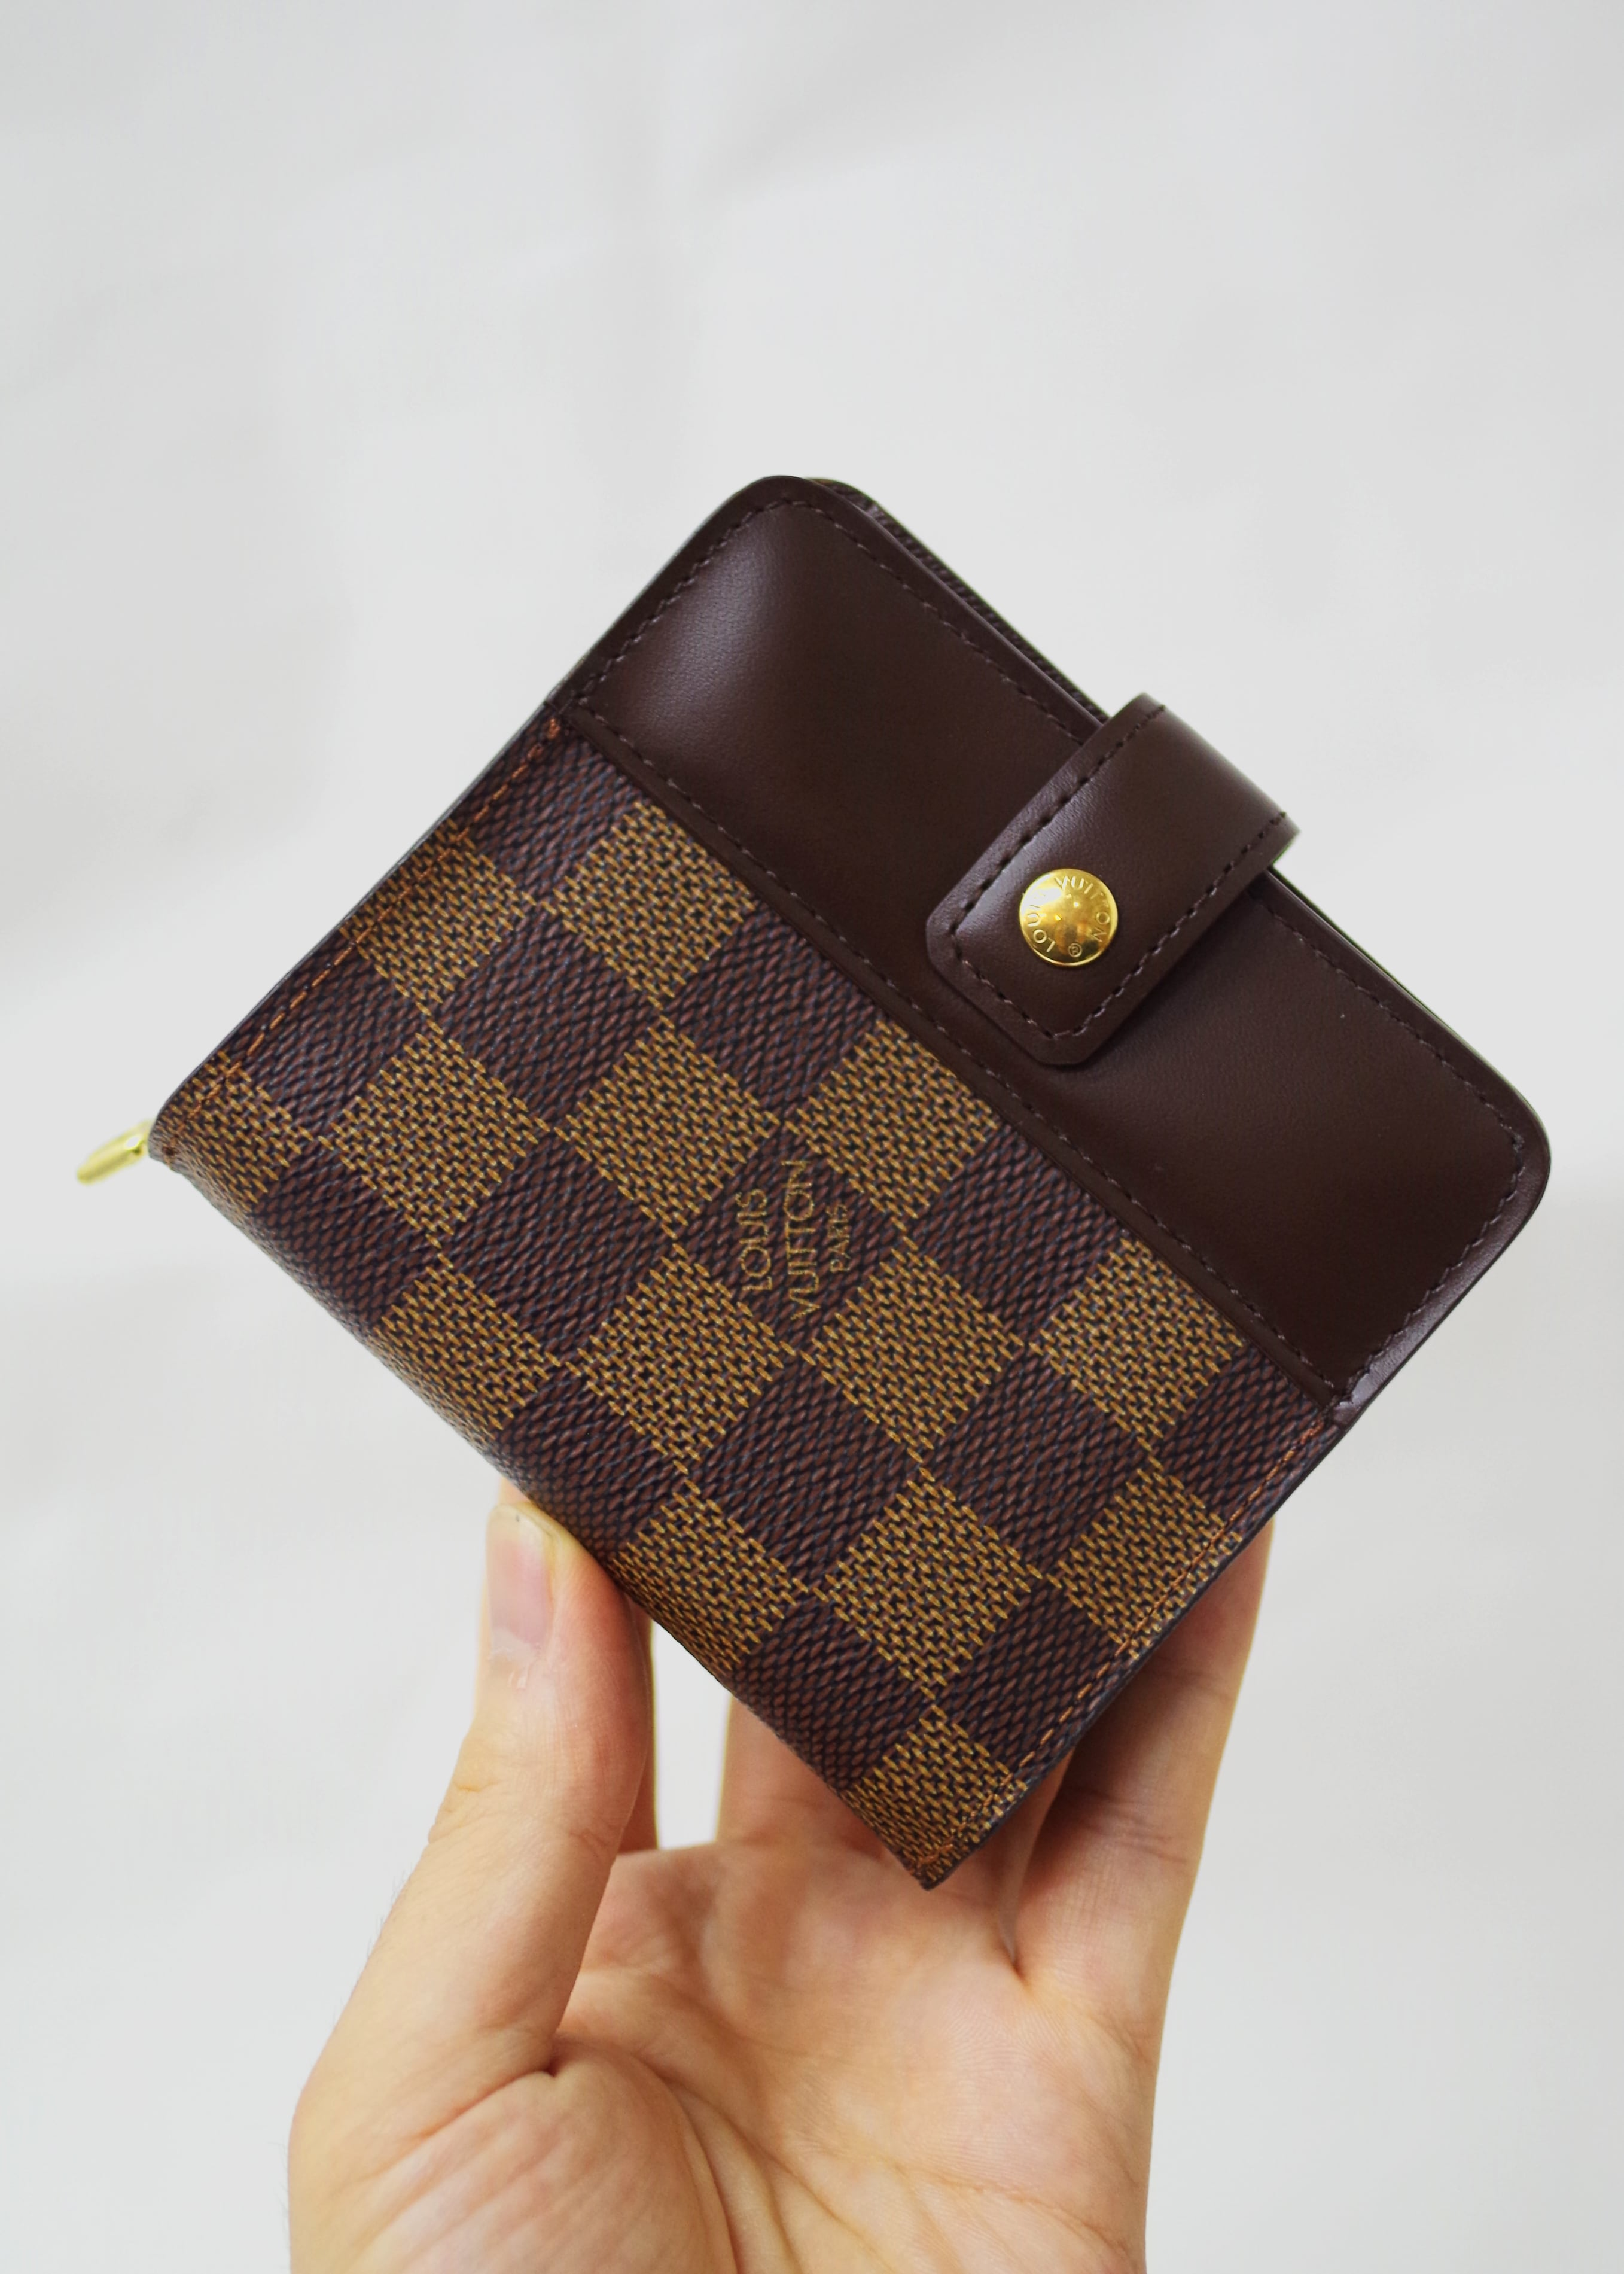 LOUIS VUITTON ルイ・ヴィトン N61668 ダミエ コンパクト財布